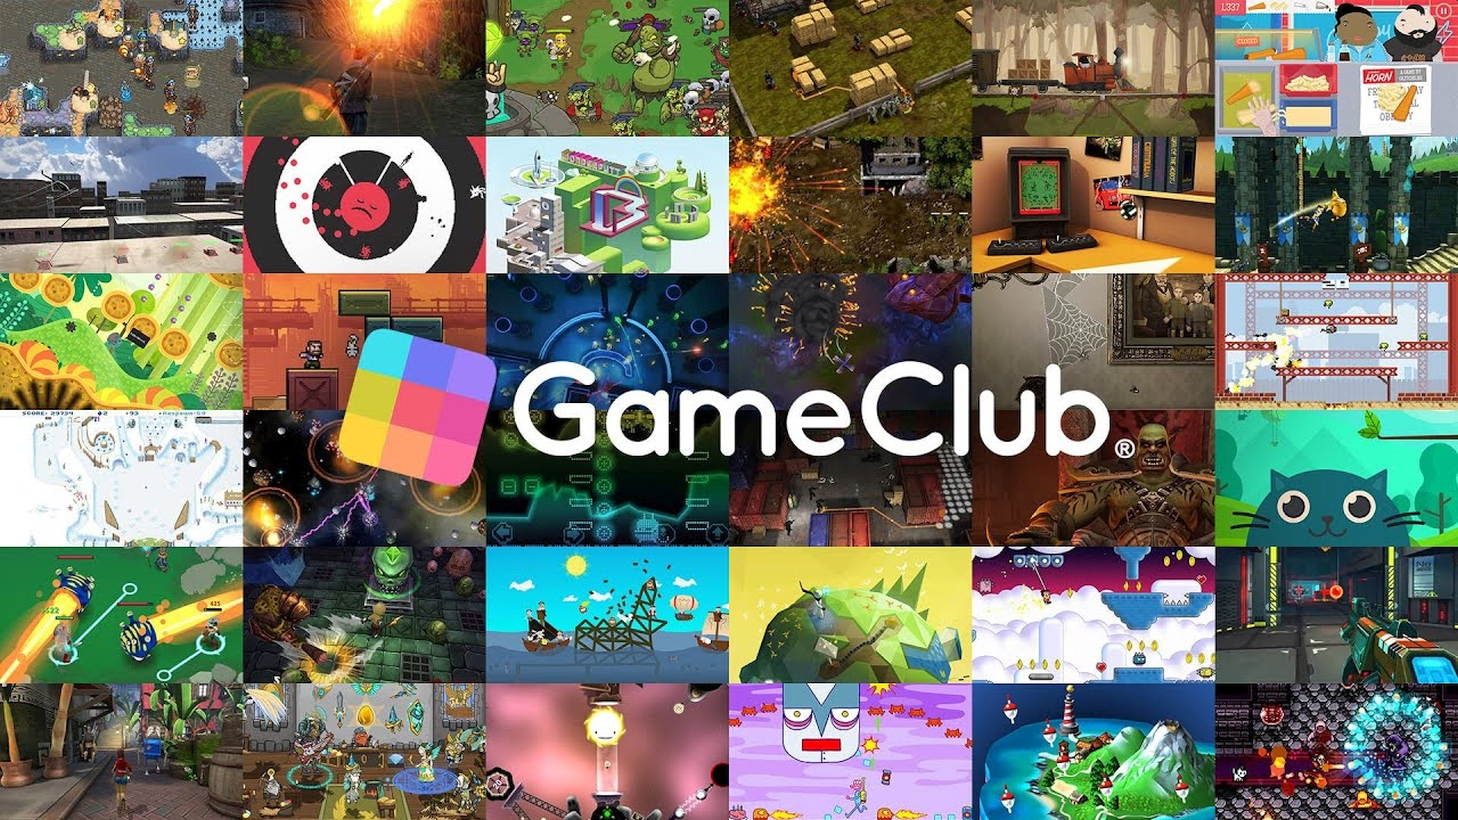 GameClub Announces Plans To Port PC Games To Mobile Subscription Service